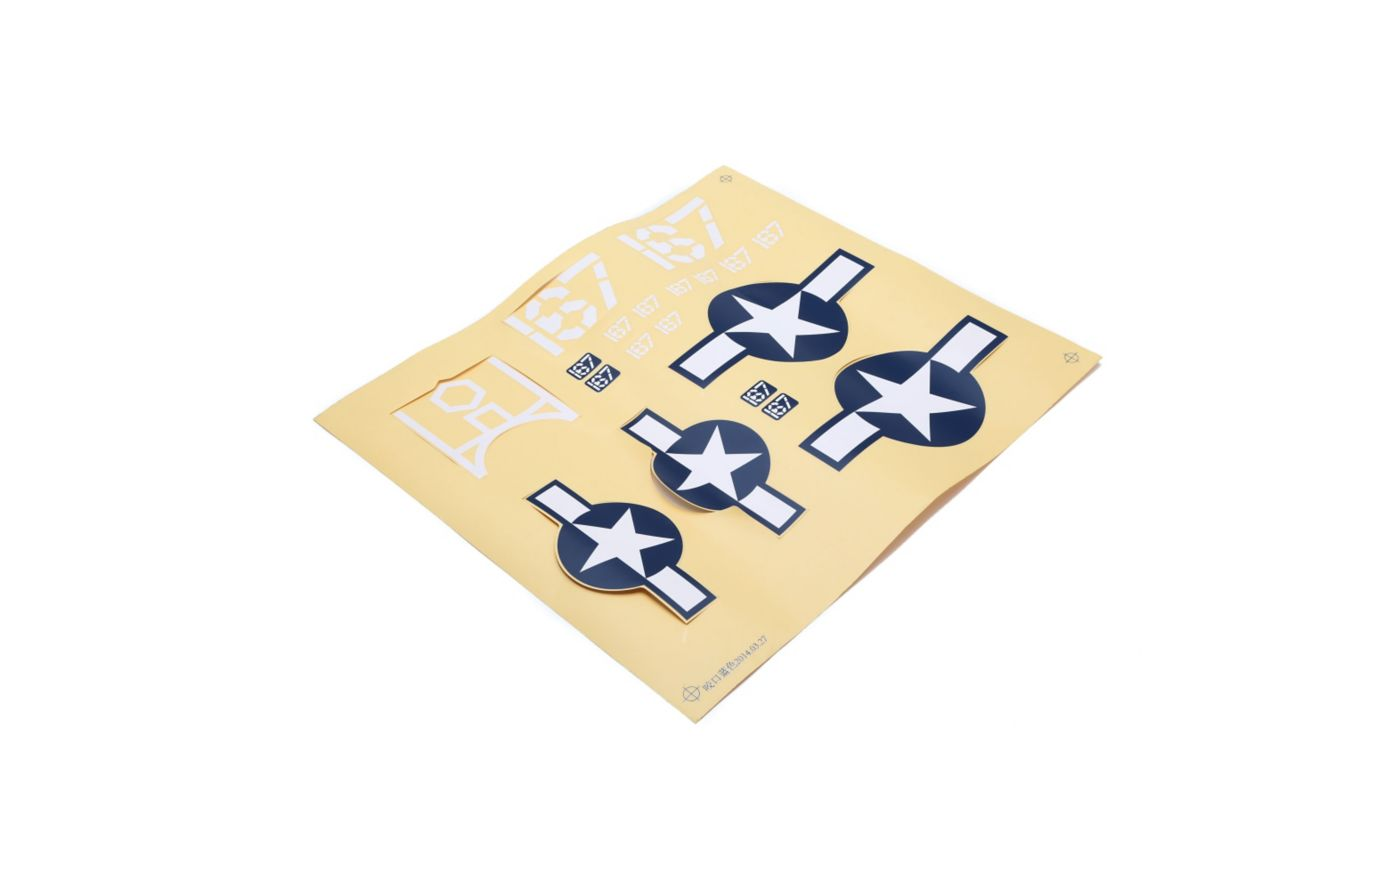 Image for Decal Sheet: Corsair S from Force RC